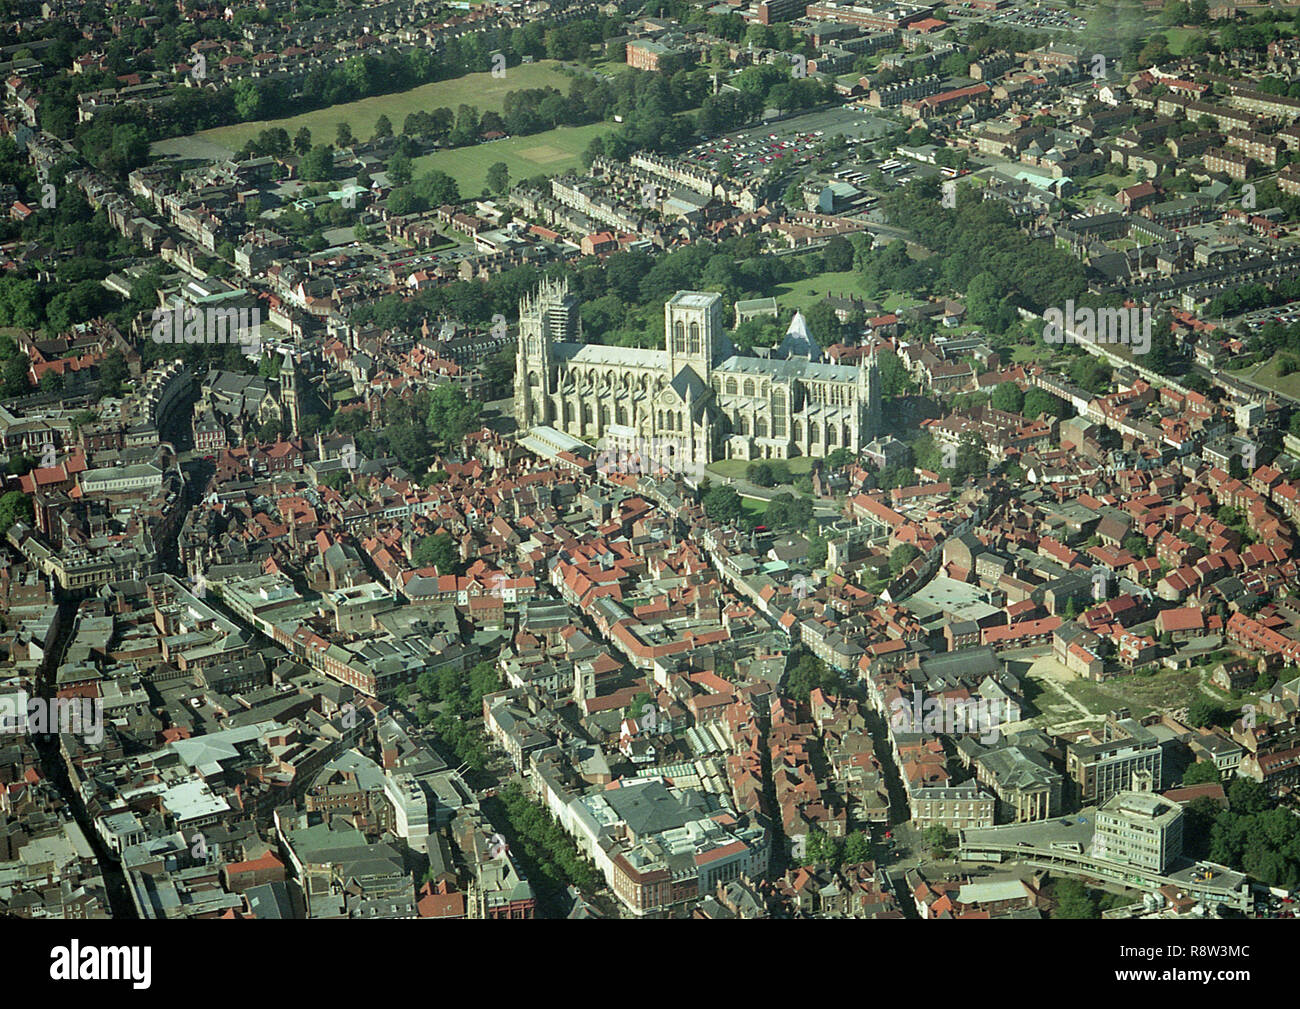 Aerial photo of the City of York showing the Minster and town centre - Stock Image